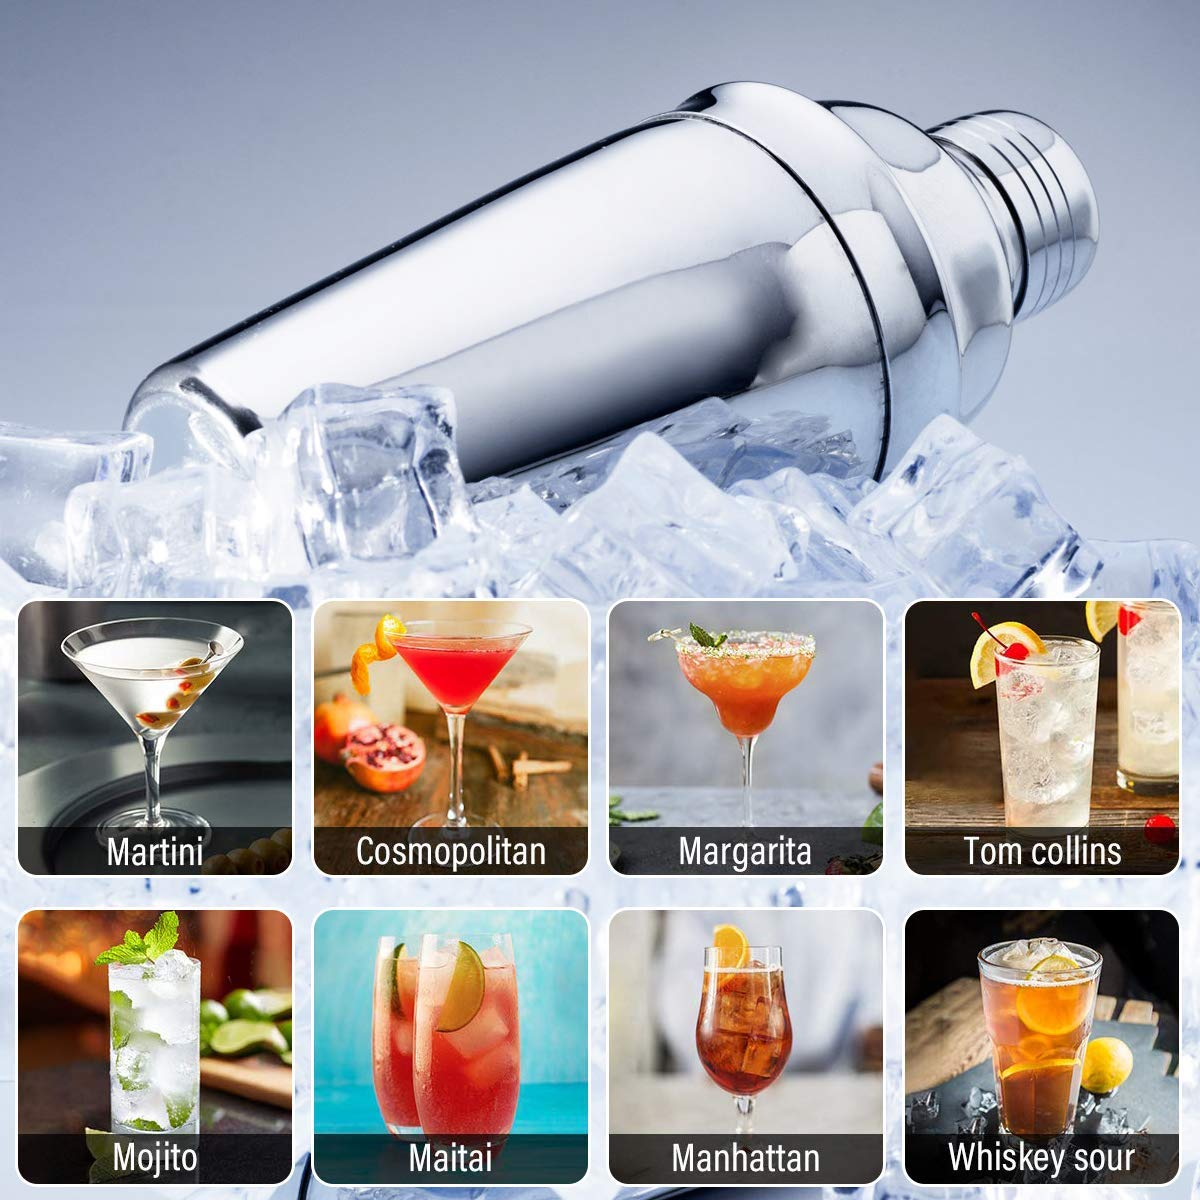 15 Piece Bartender Kit Cocktail Shaker Set with Stand: Home Bar Tools Set - Shaker with Strainer, Muddler, Jigger, Stand, Ice Thong and More - with Cocktail Recipes - Cocktail Shaker Stainless Steel by SUPERSUN (Image #4)